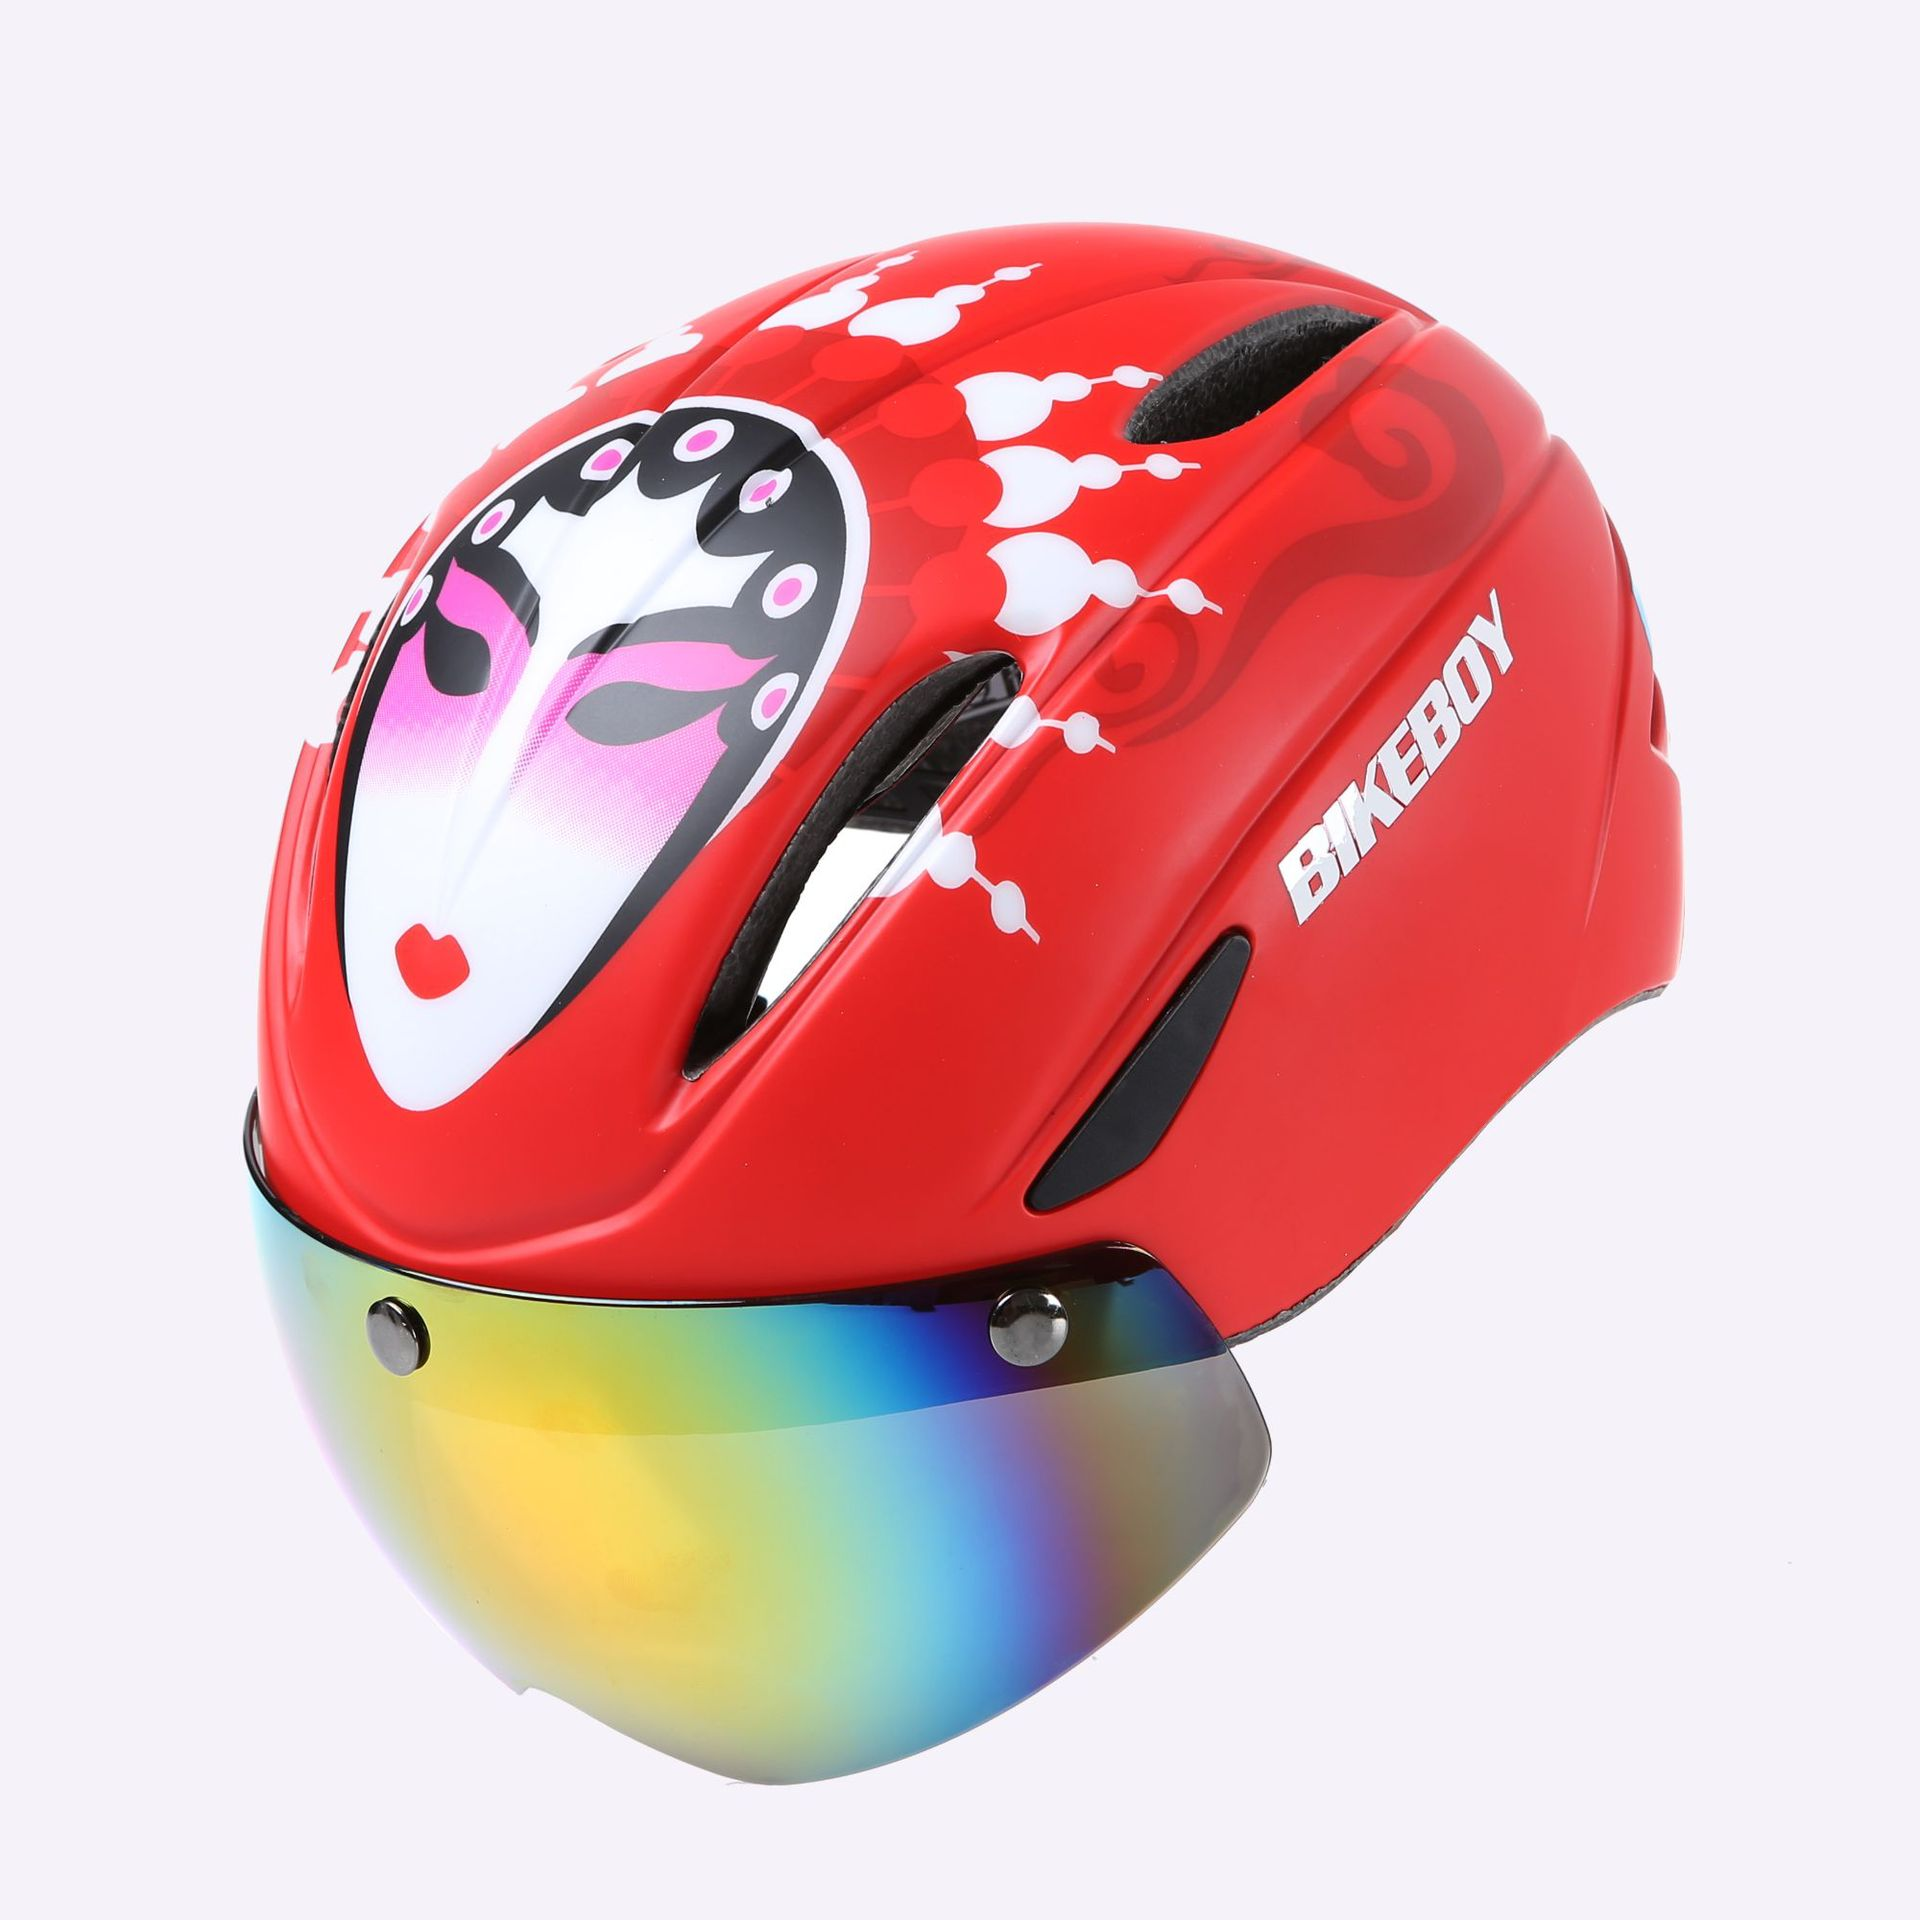 Bikeboy Riding Helmet Glasses One-piece Men Road Bike Mountain Bike Helmet Bicycle Helmet Restraint Goggles Pattern A  - matte_Free size - gray lenses